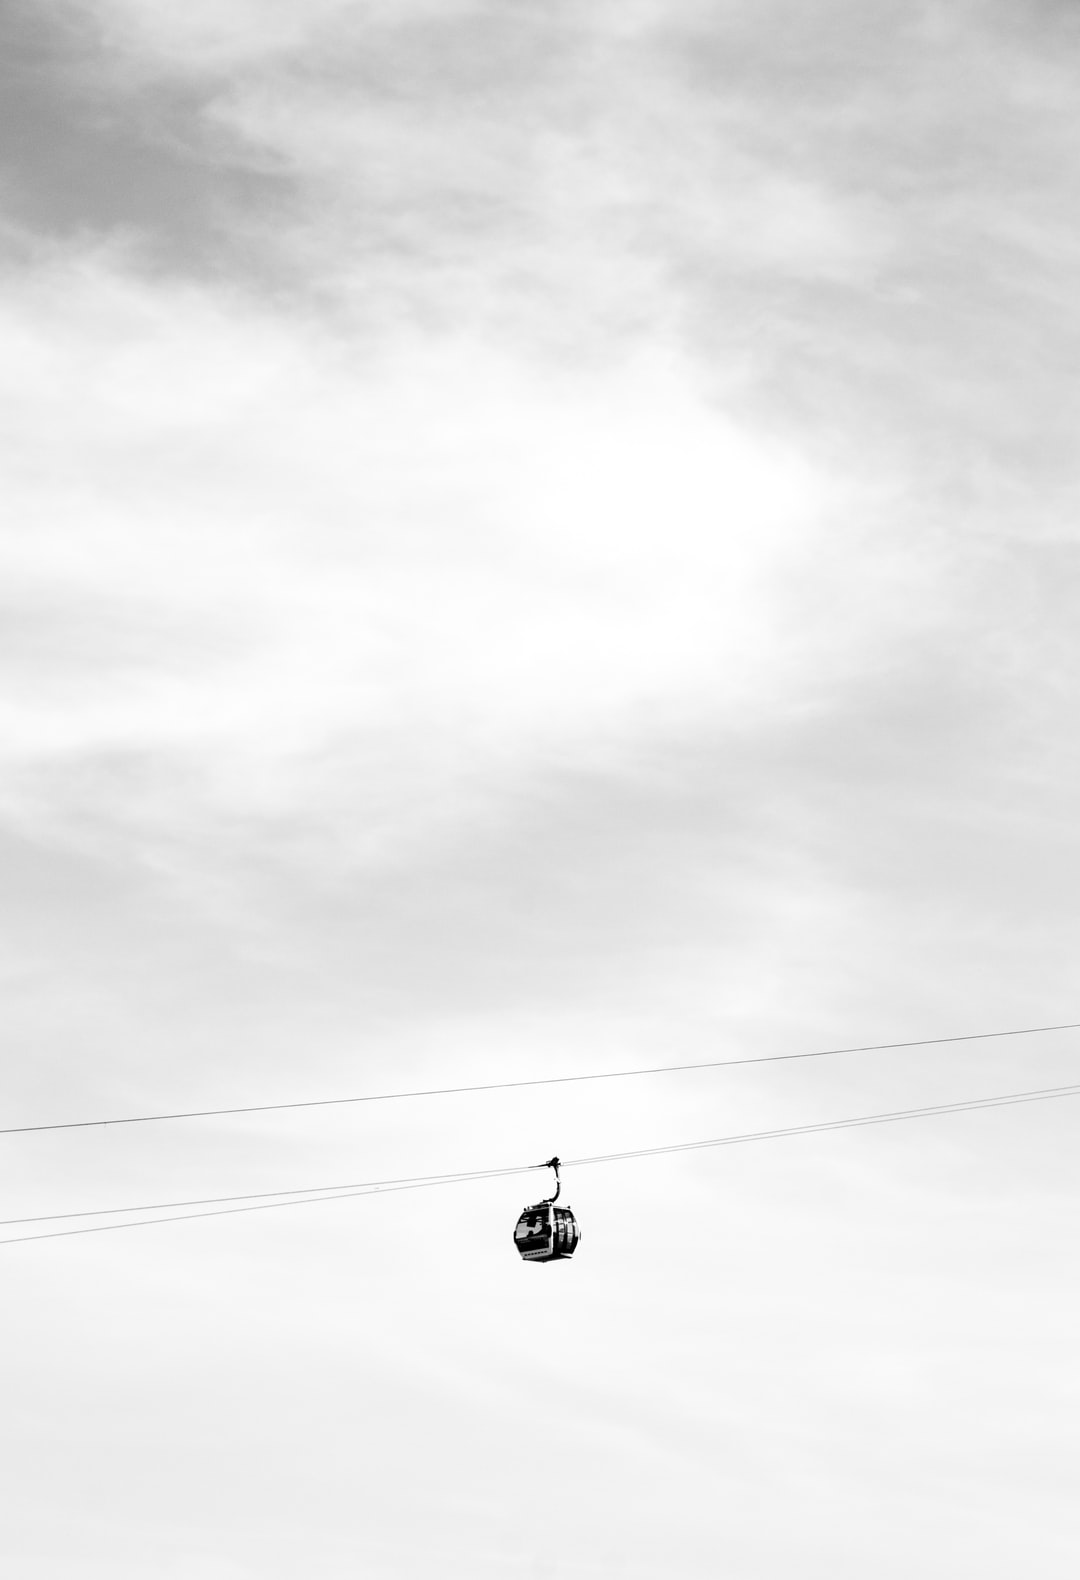 A cable car, part of the Emirates Air Line, makes its short journey over the river Thames.